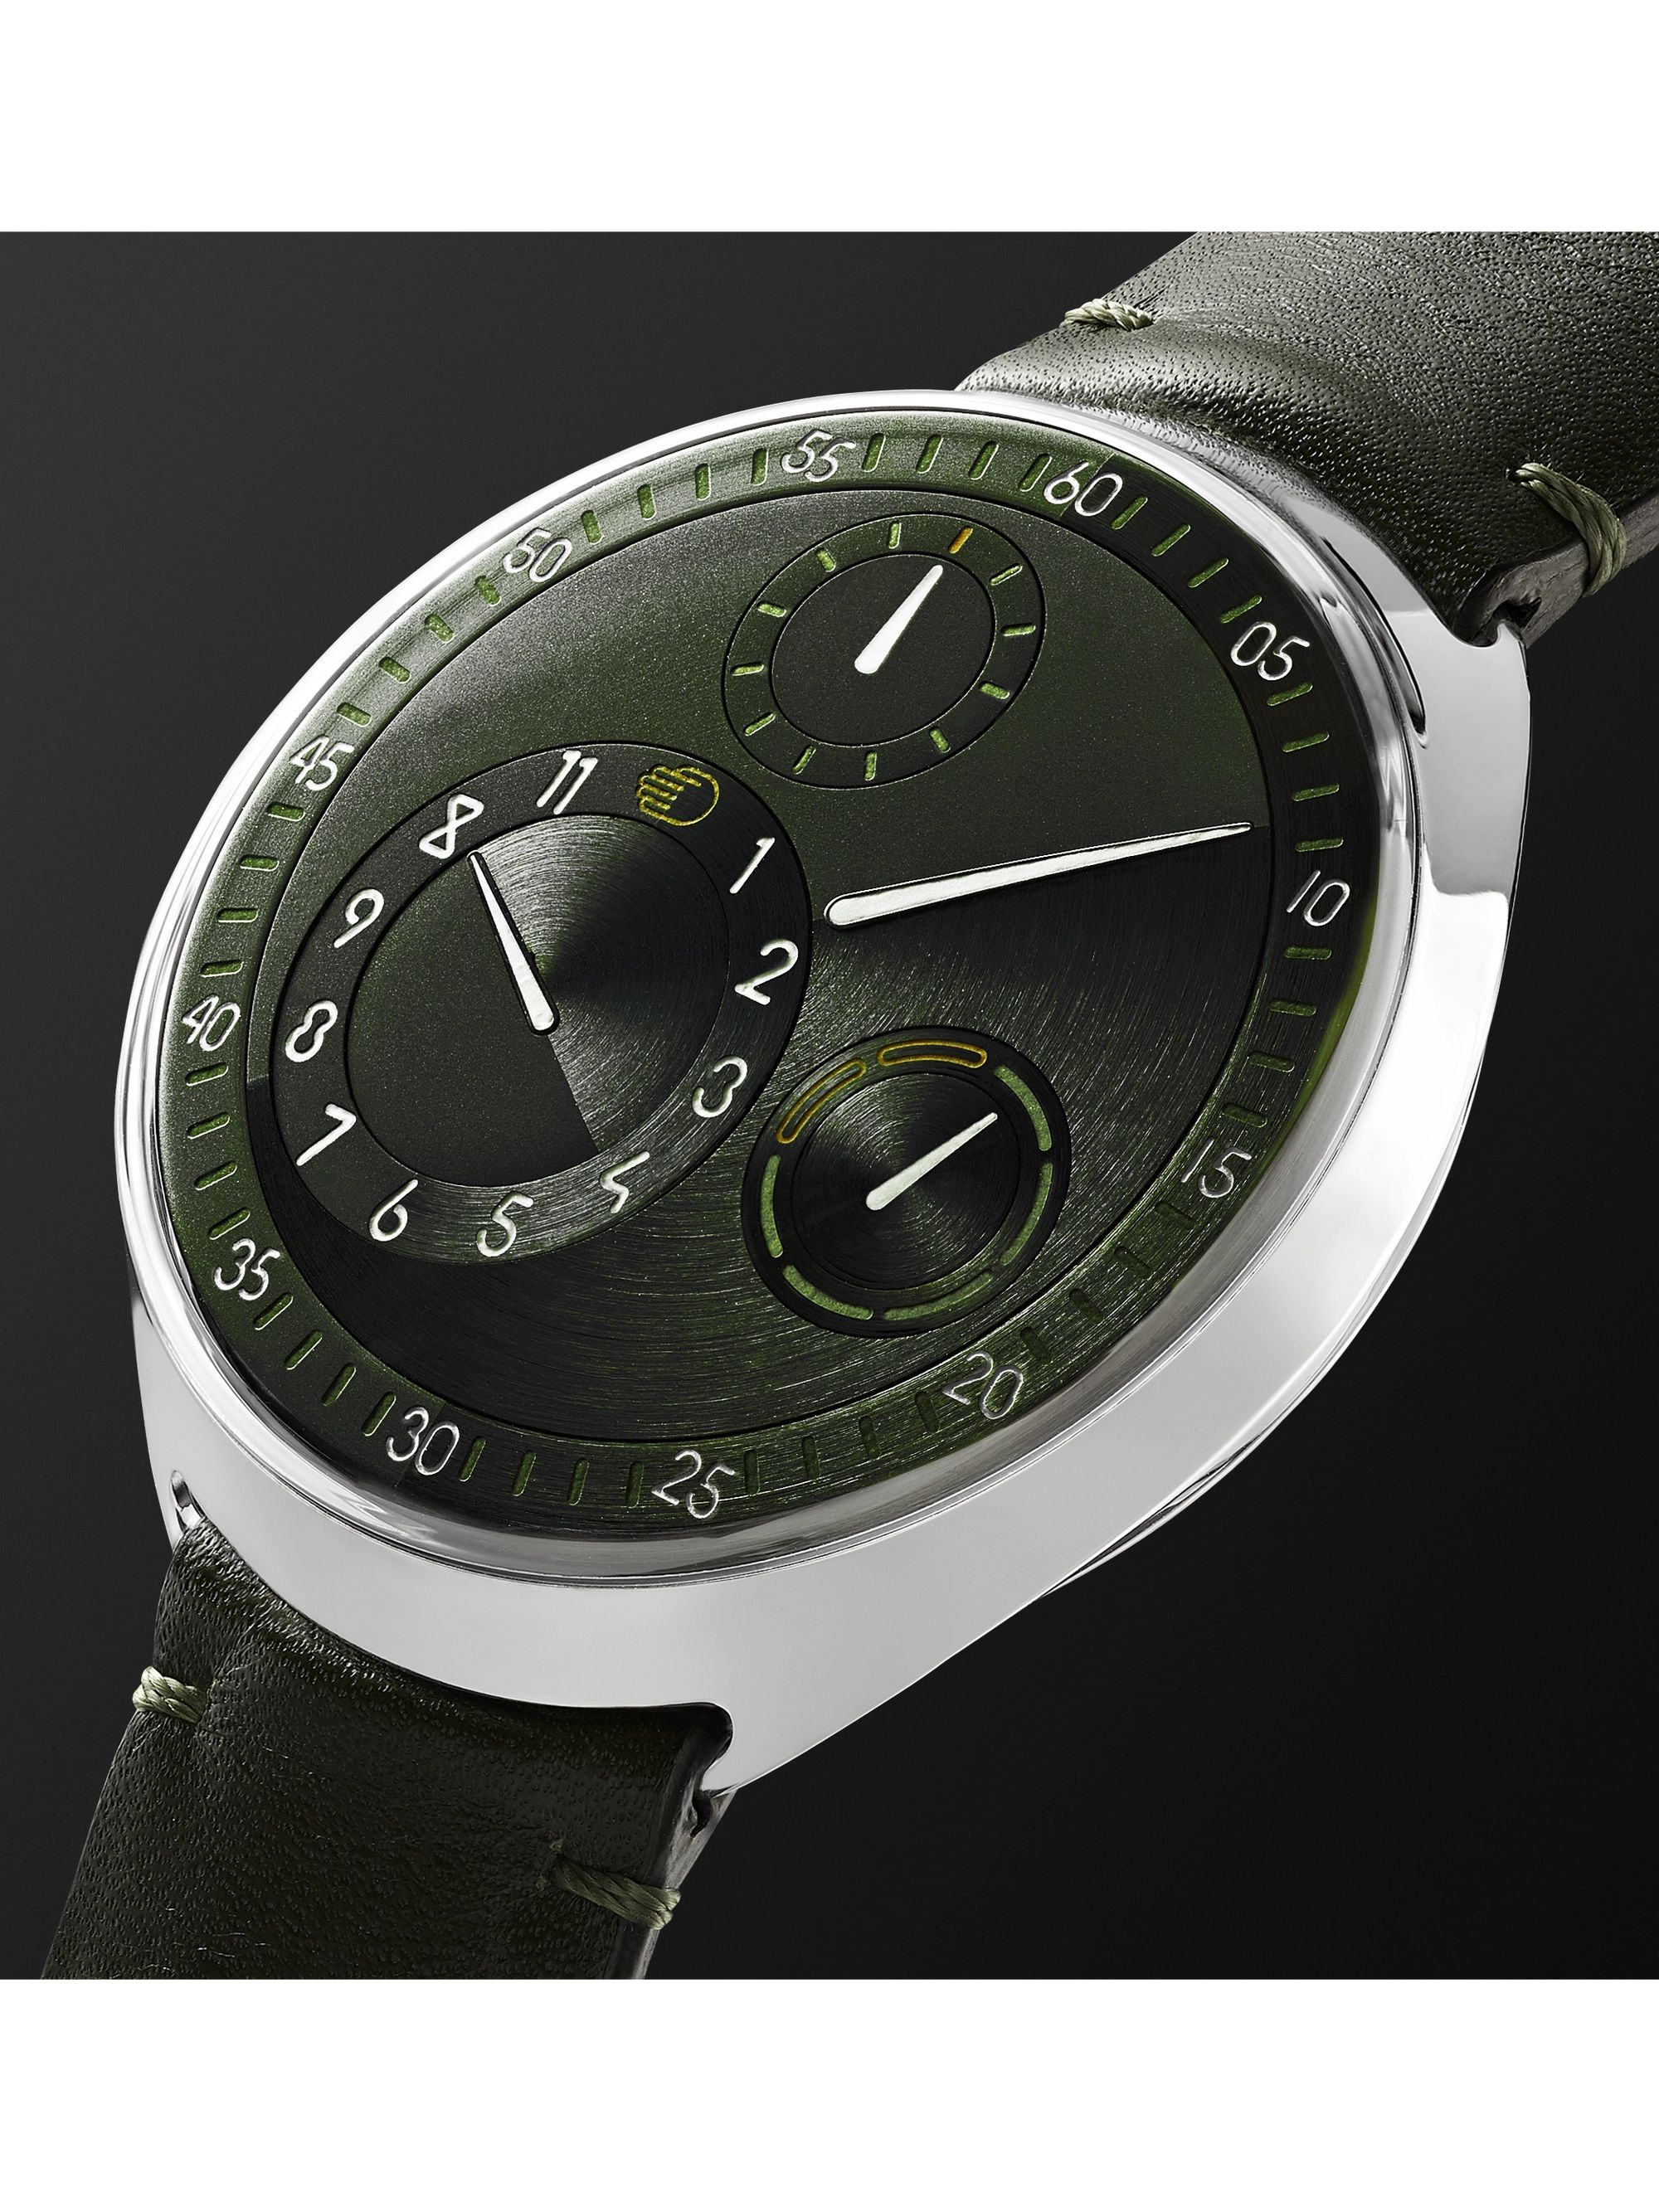 Ressence Type 1 Slim X Limited Edition Automatic 41.5mm Grade 5 Titanium and Leather Watch